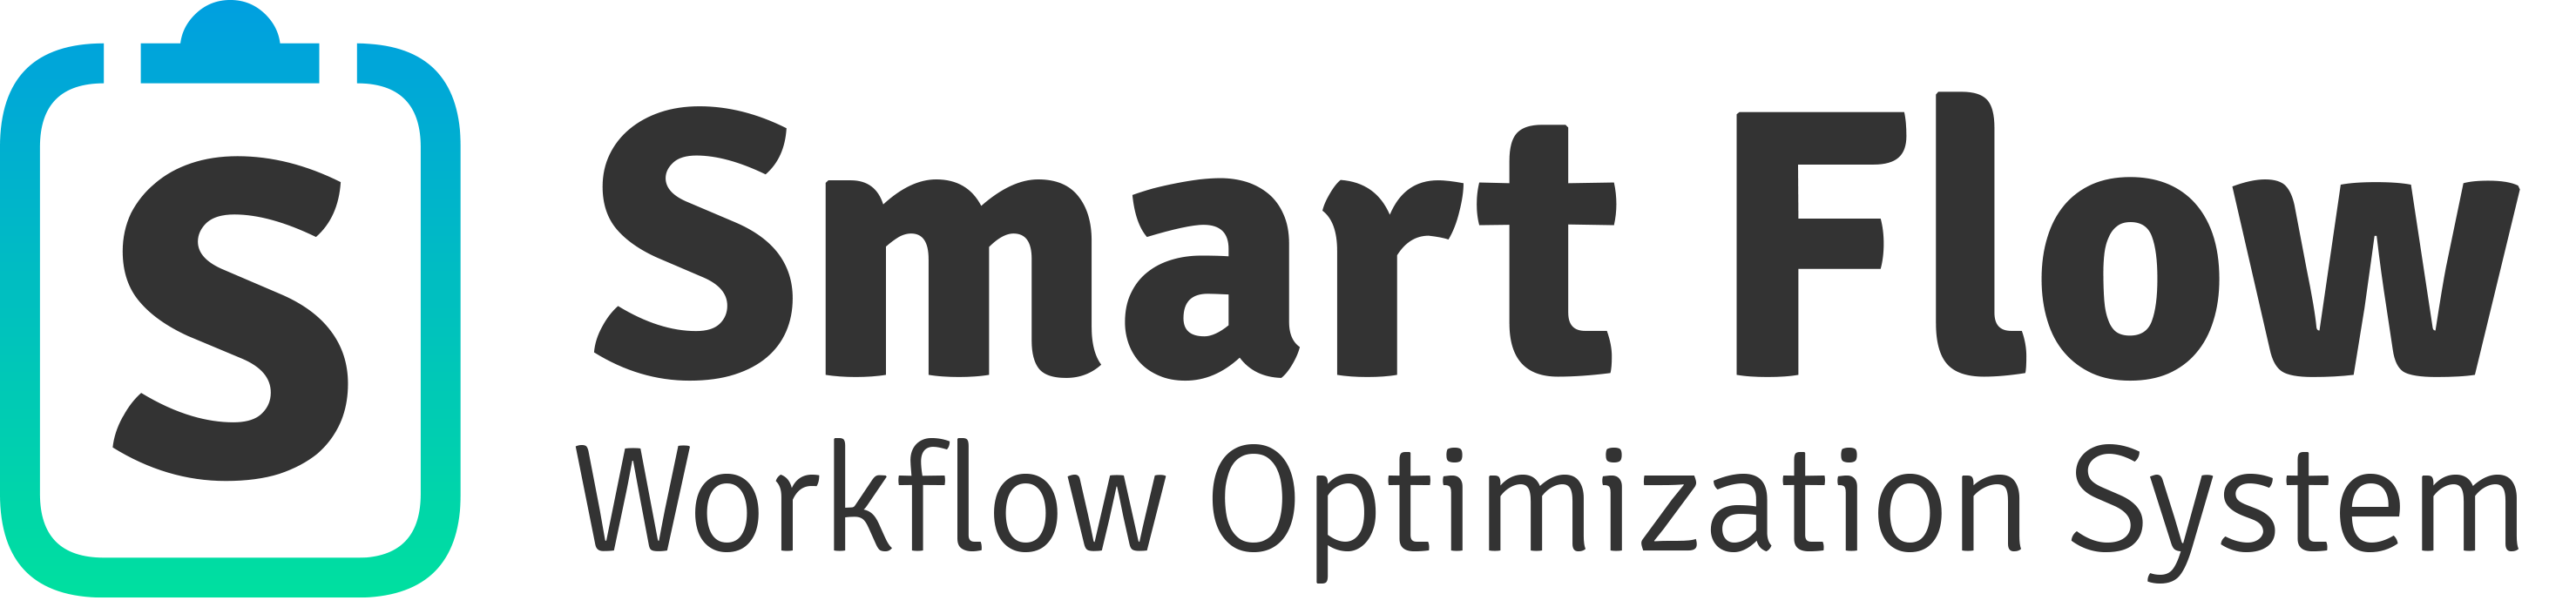 Smart Flow - Vet Work Made Easy